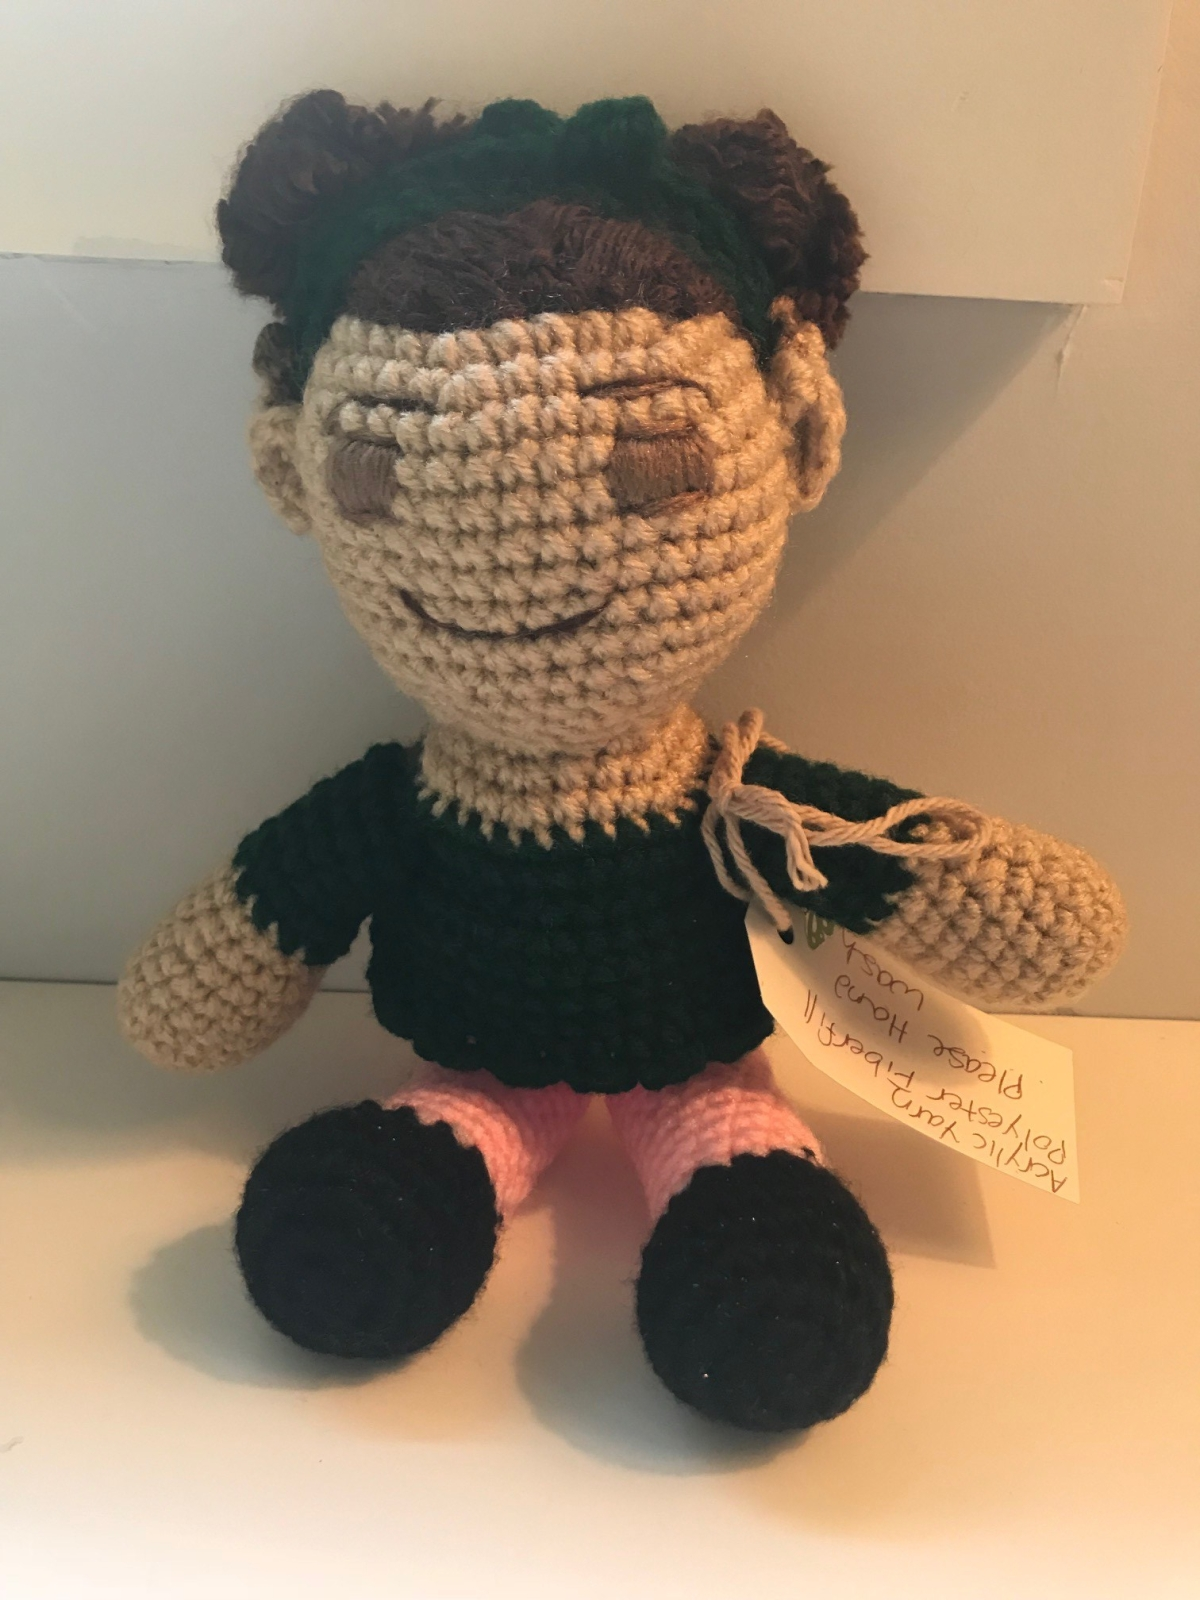 It's Sonya in Crochet Doll Form! And Other Adorable Gifts Featuring Cochlear Implants